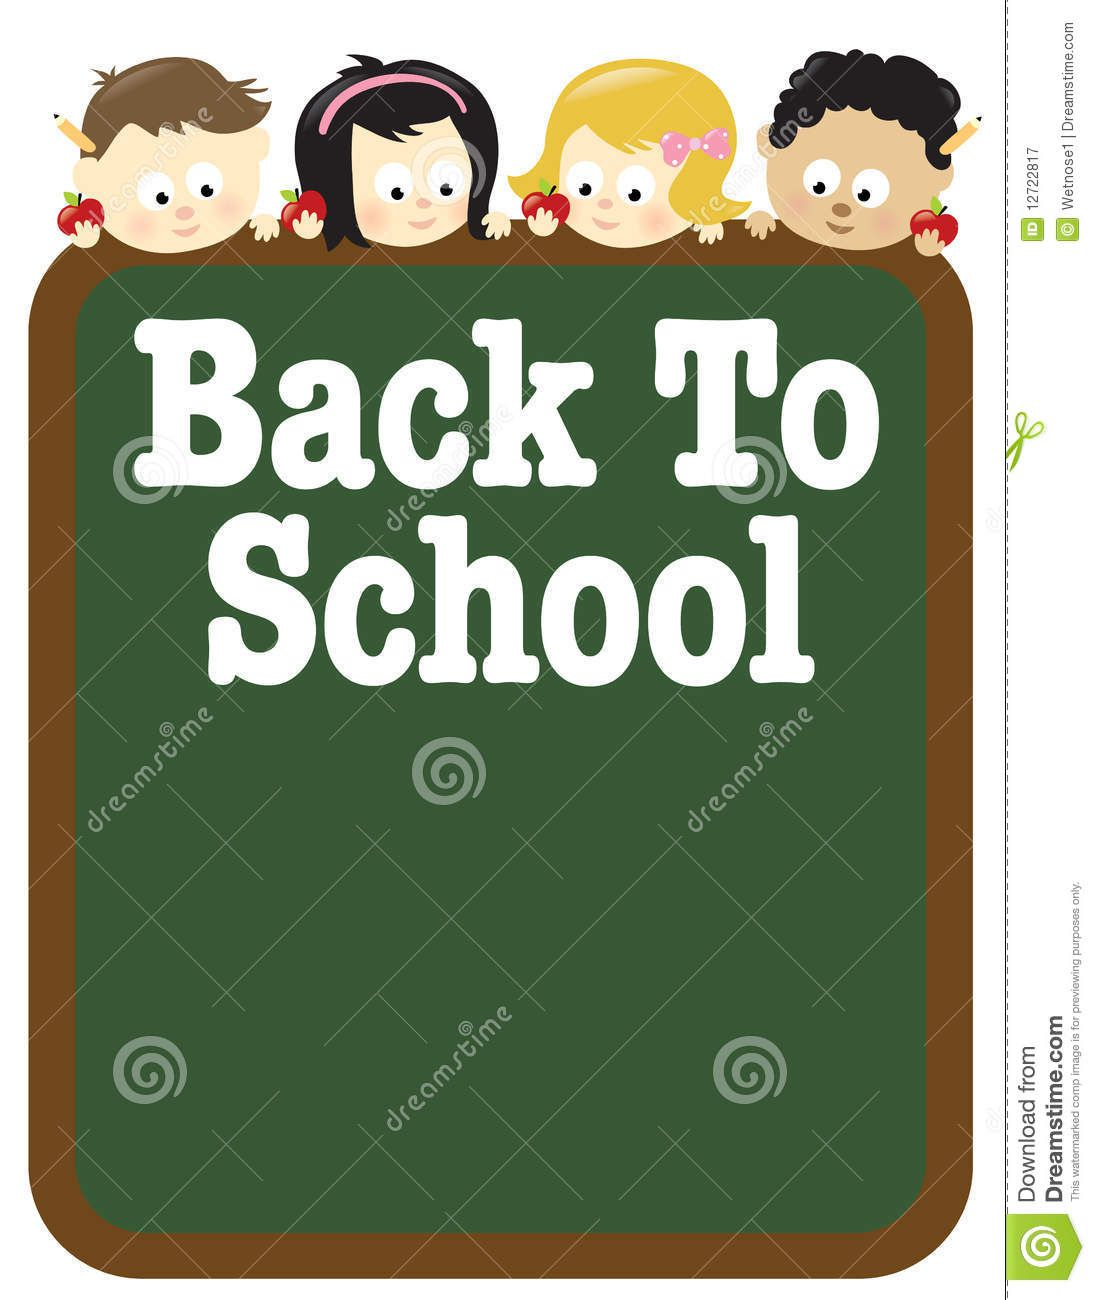 003 Archaicawful Free Back To School Flyer Template Word High Def Full